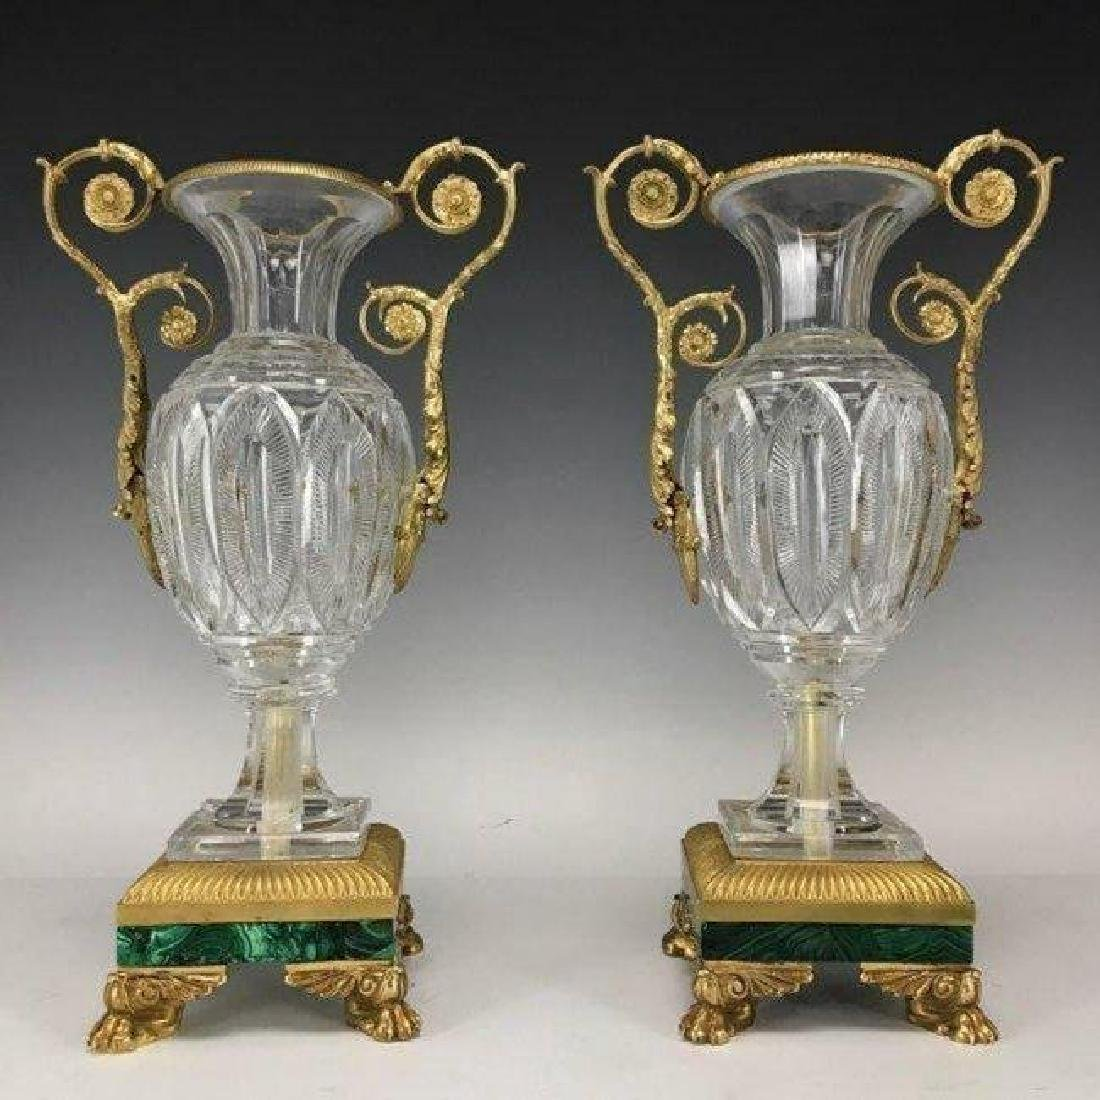 A PAIR OF ORMOLU MOUNTED BACCARAT GLASS VASES